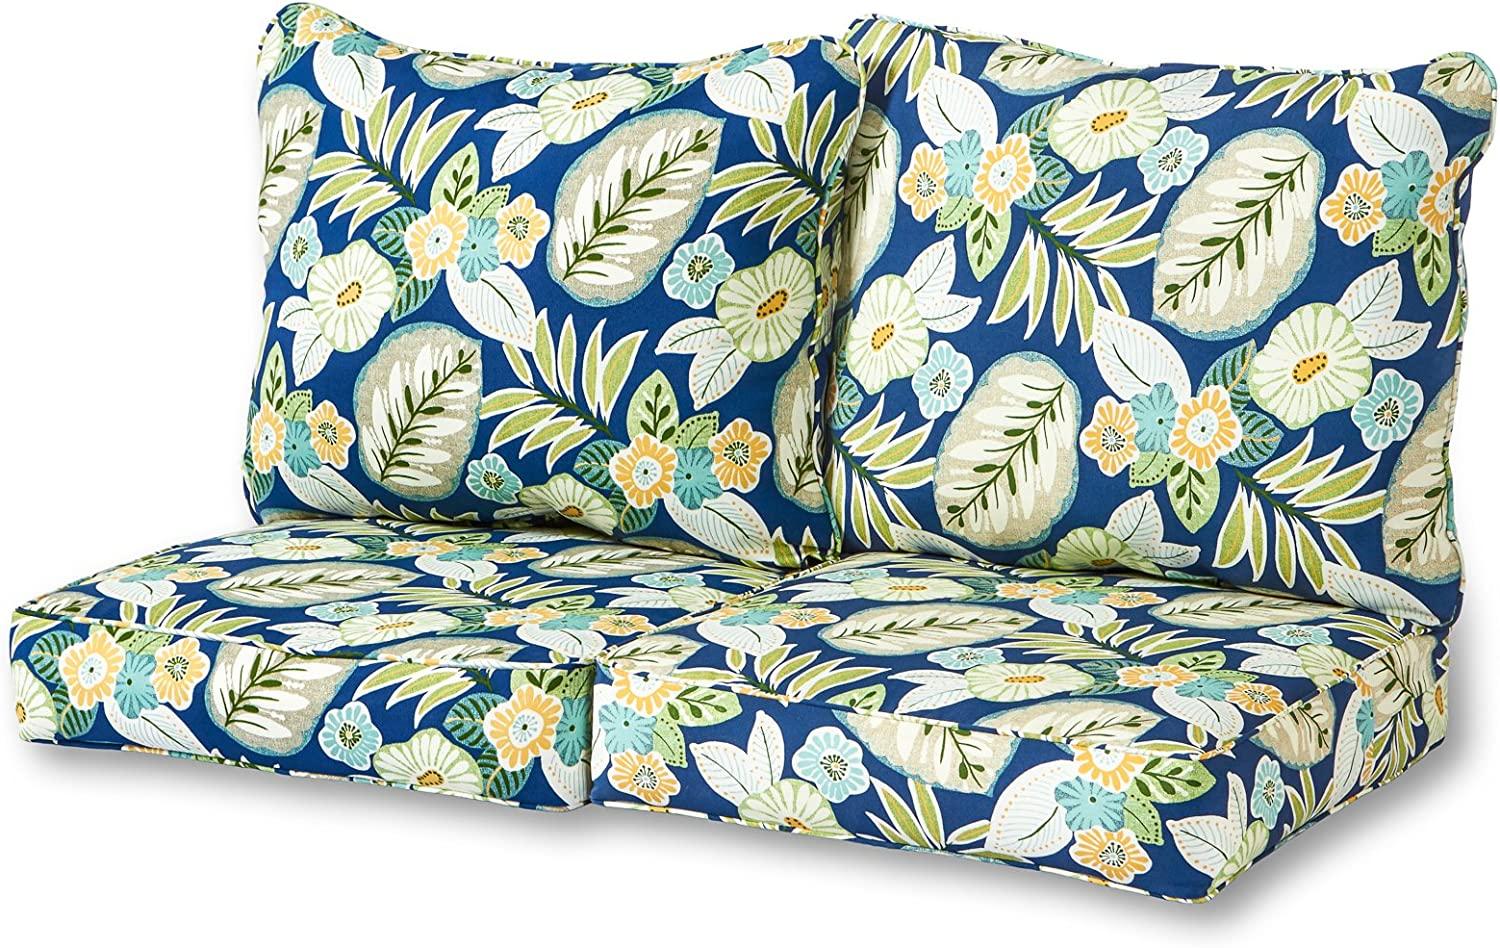 Greendale Home Fashions Deep Seat Loveseat Cushion Set in Marlow Blue Floral